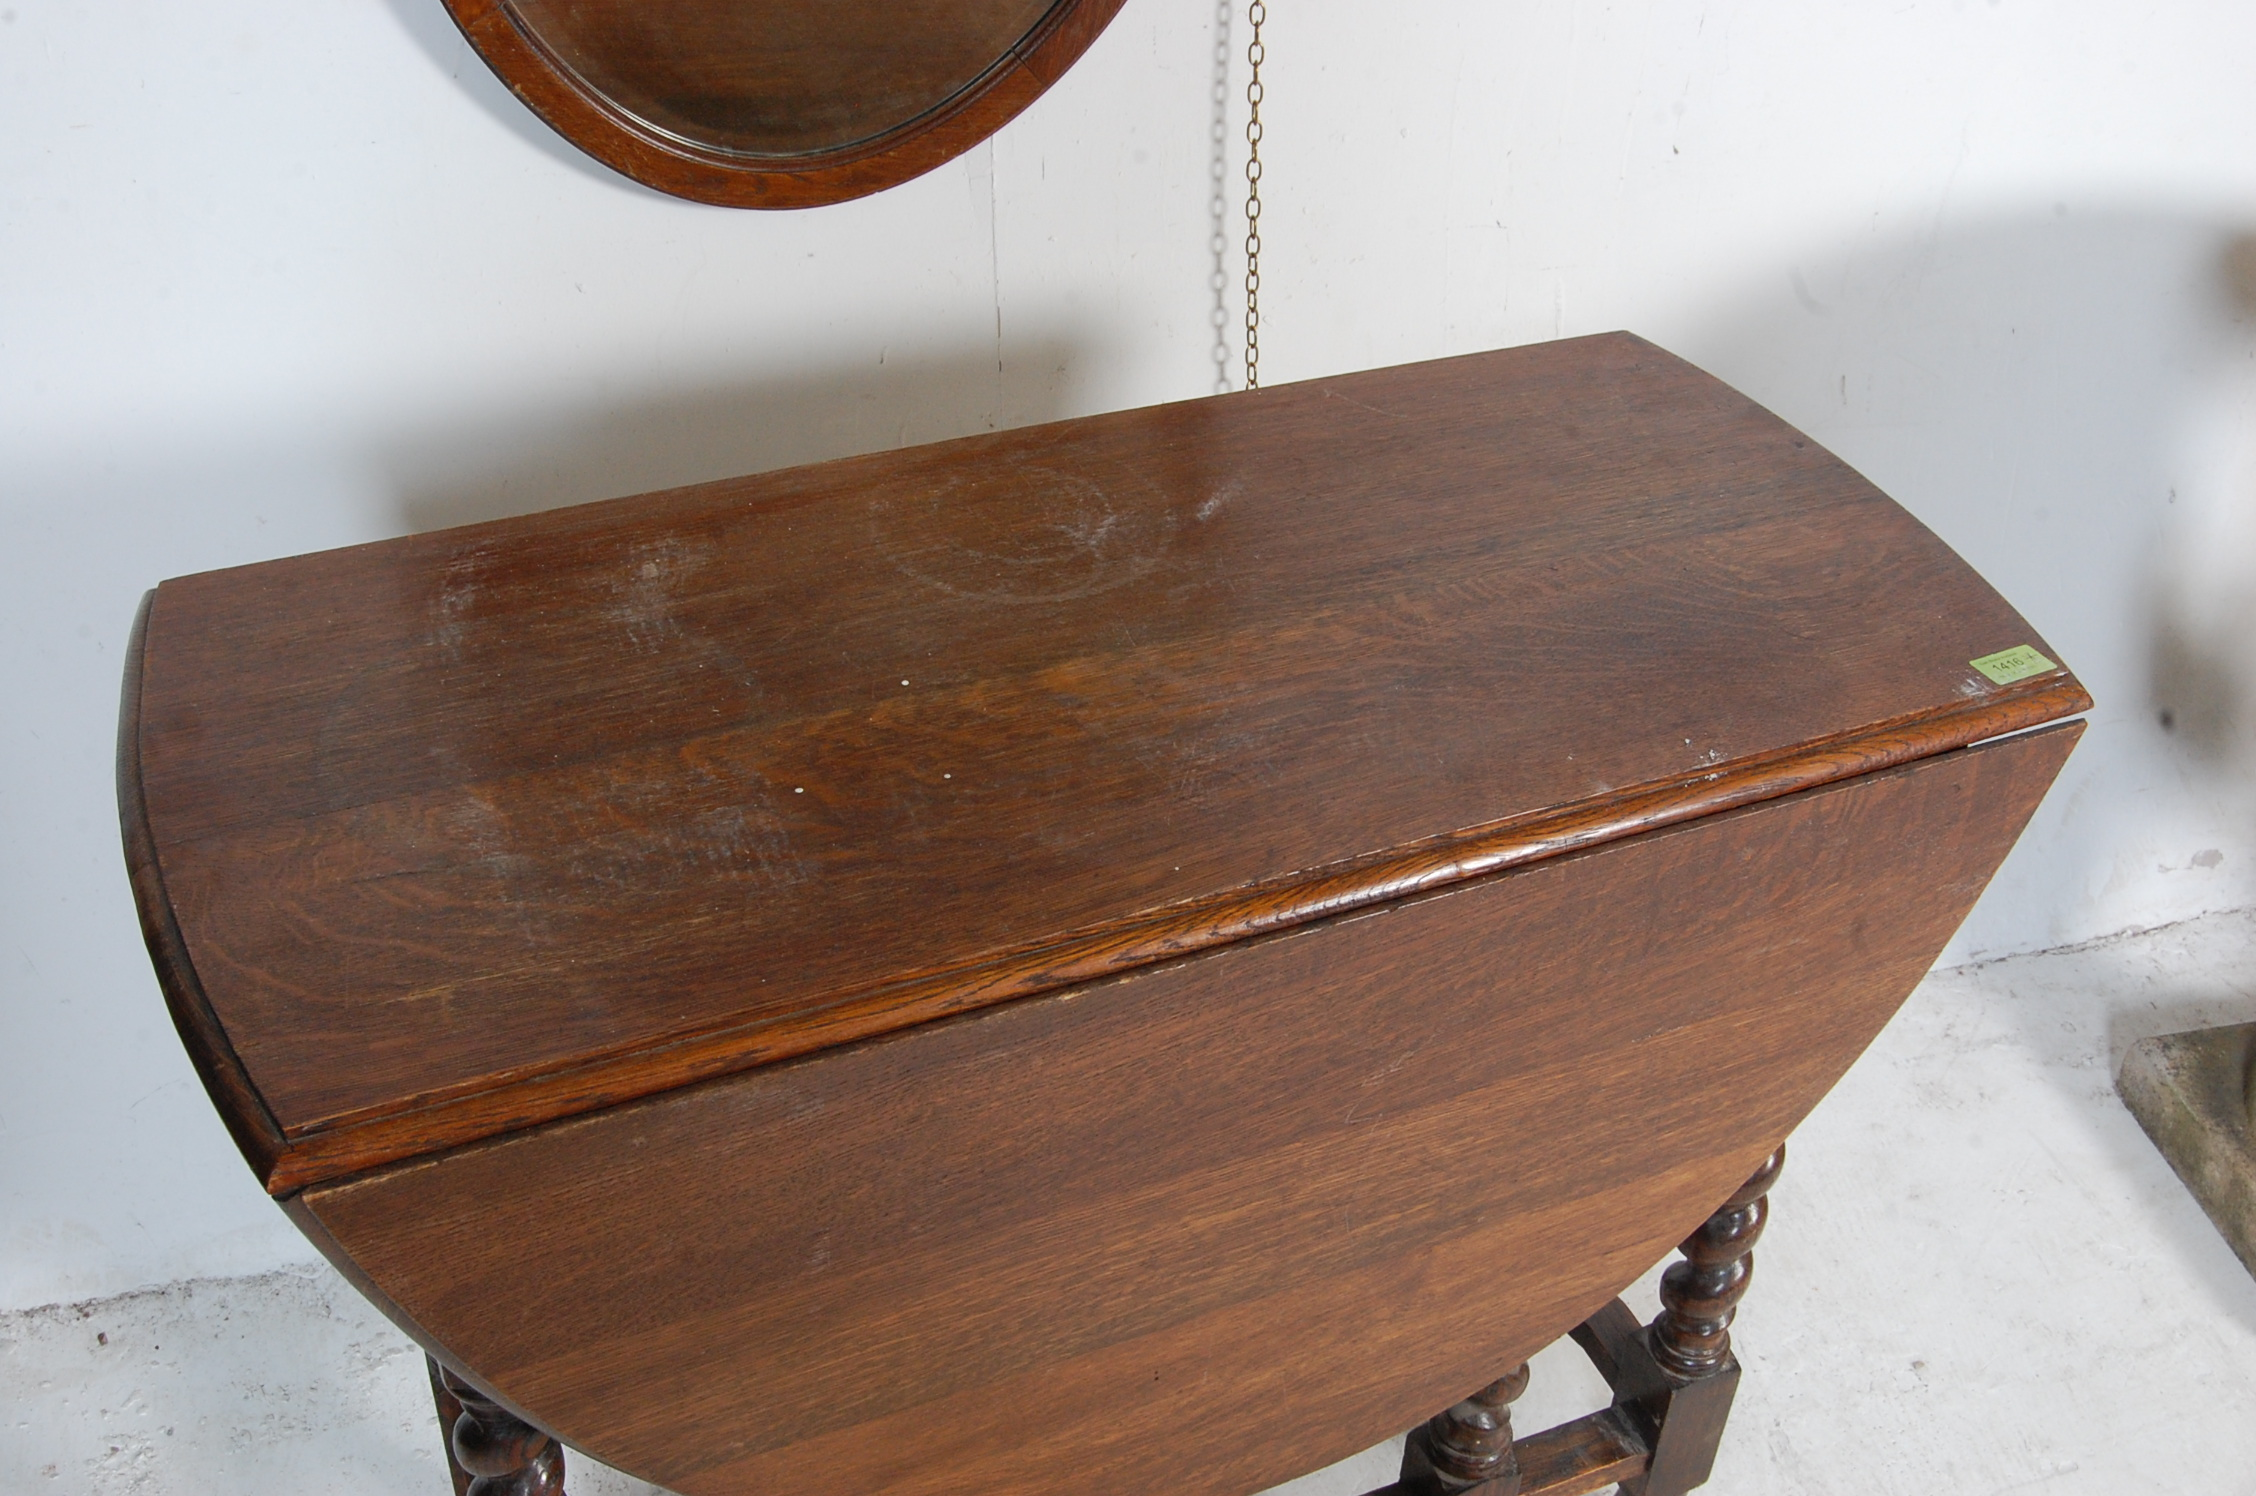 1940'S OAK DROP LEAF DINING TABLE AND OVAL WALL MIRROR - Image 4 of 6